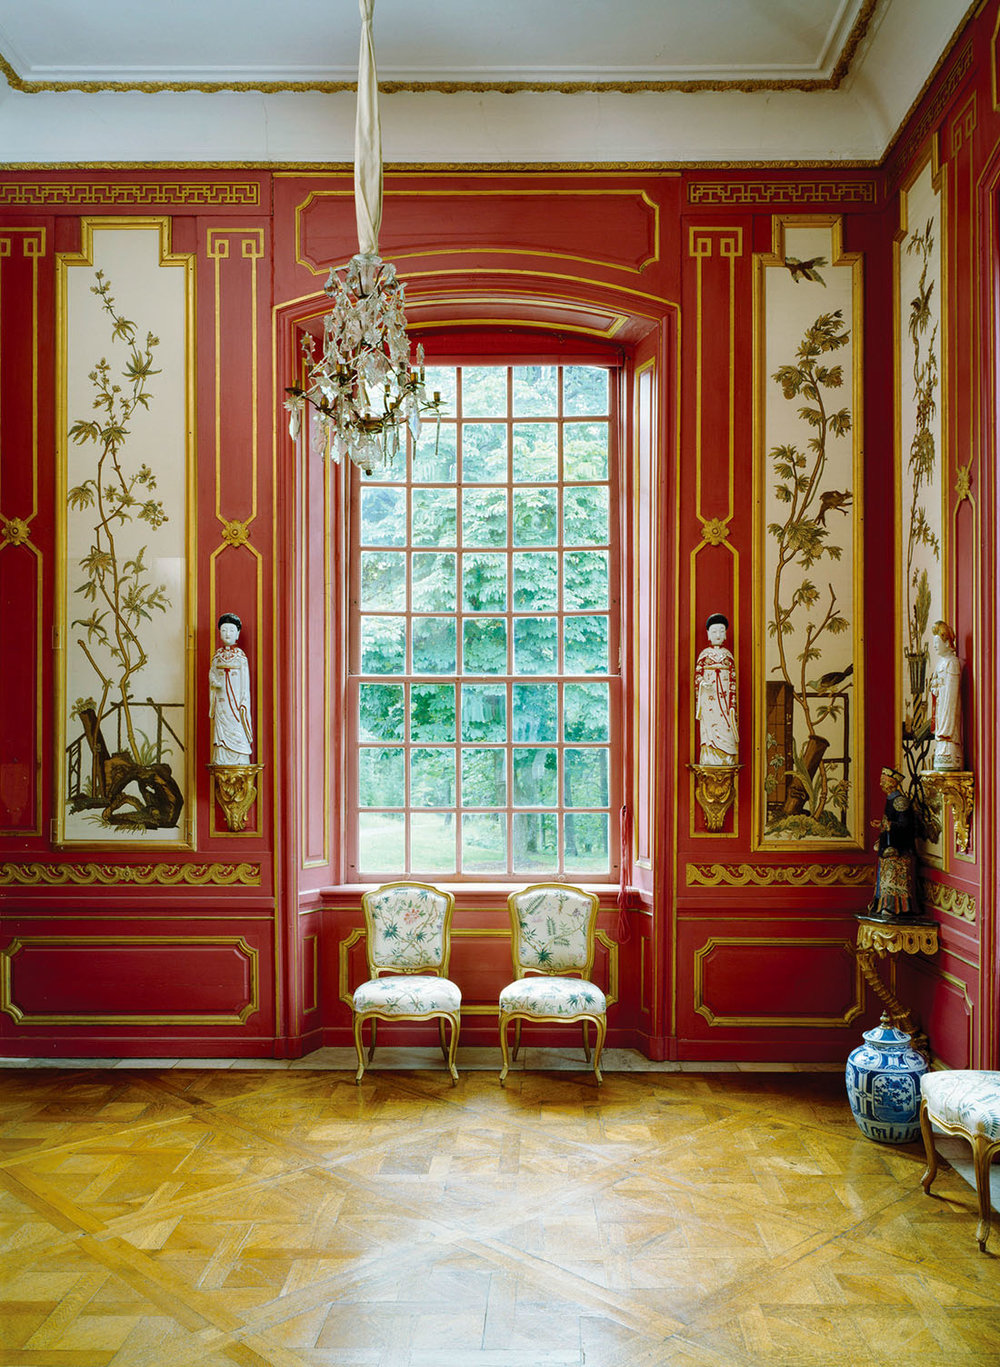 The porcelain, silks, lacquers and other luxury items shown in this red room in the Chinese Pavilion were all brought to Sweden from China.Photo courtesy of Swedish Royal Court